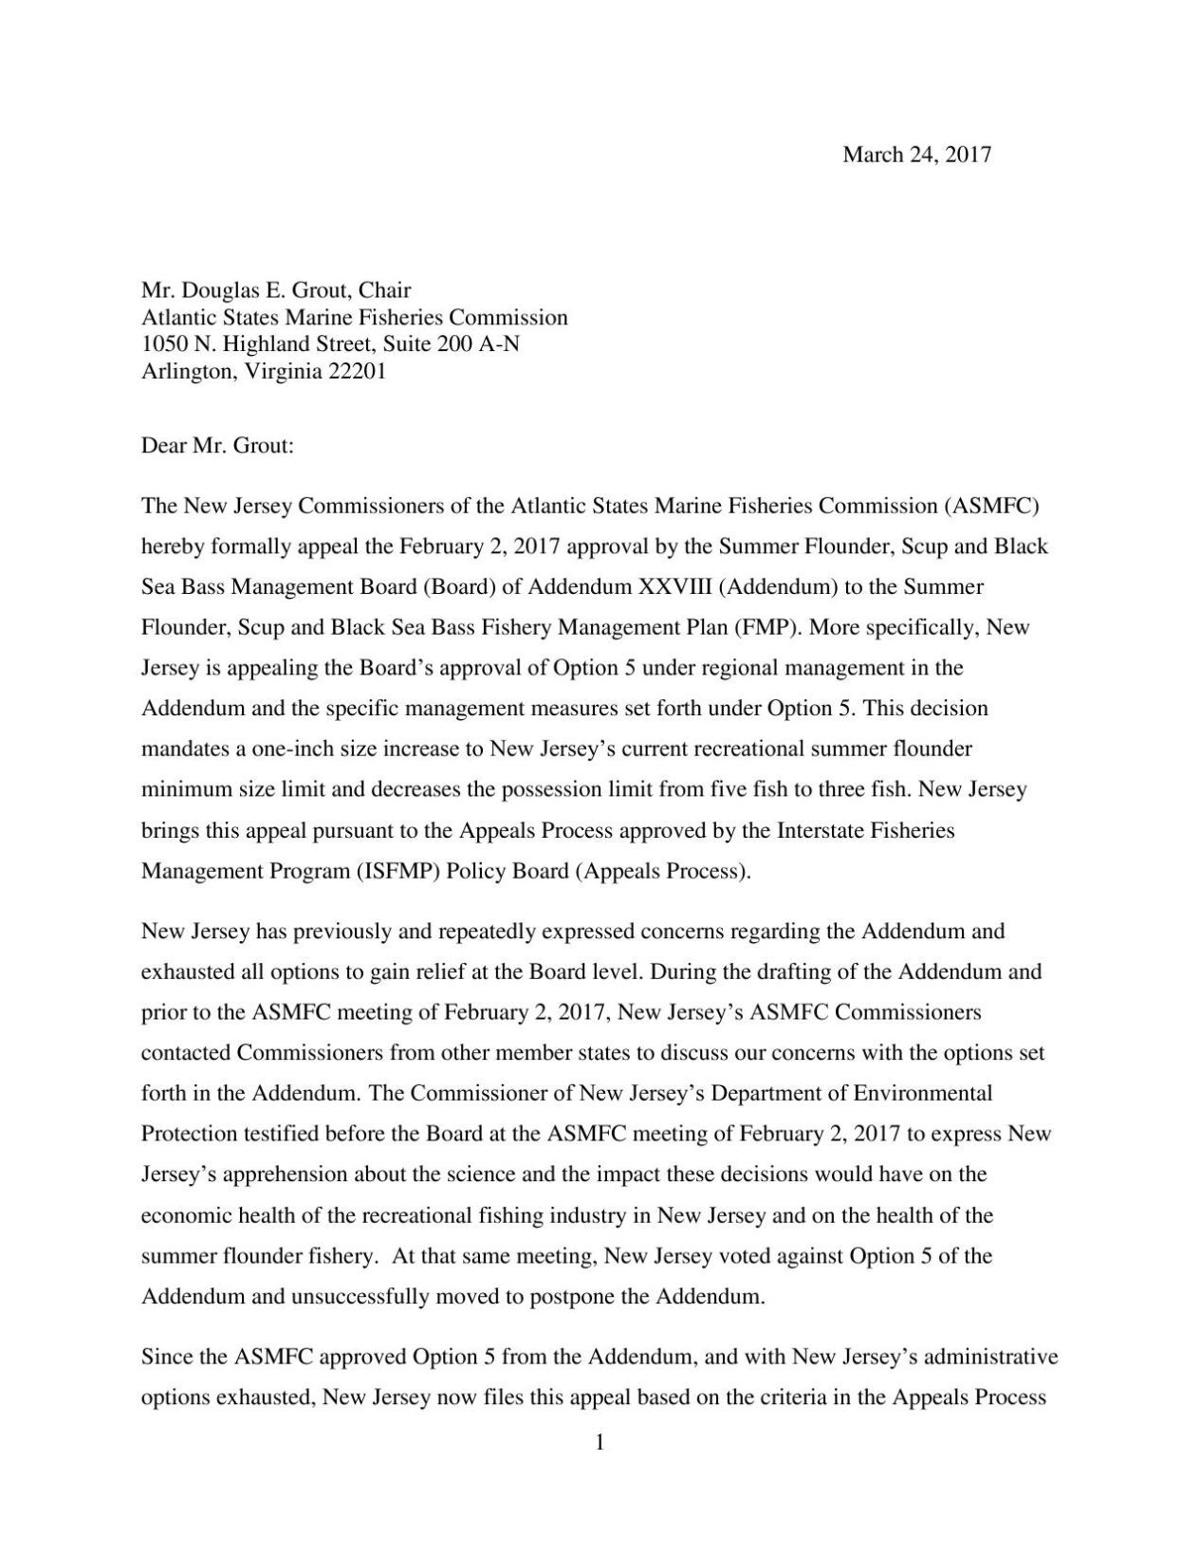 New Jersey Appeal Letter To The Atlantic States Marine Fisheries Commission Pressofatlanticcity Com